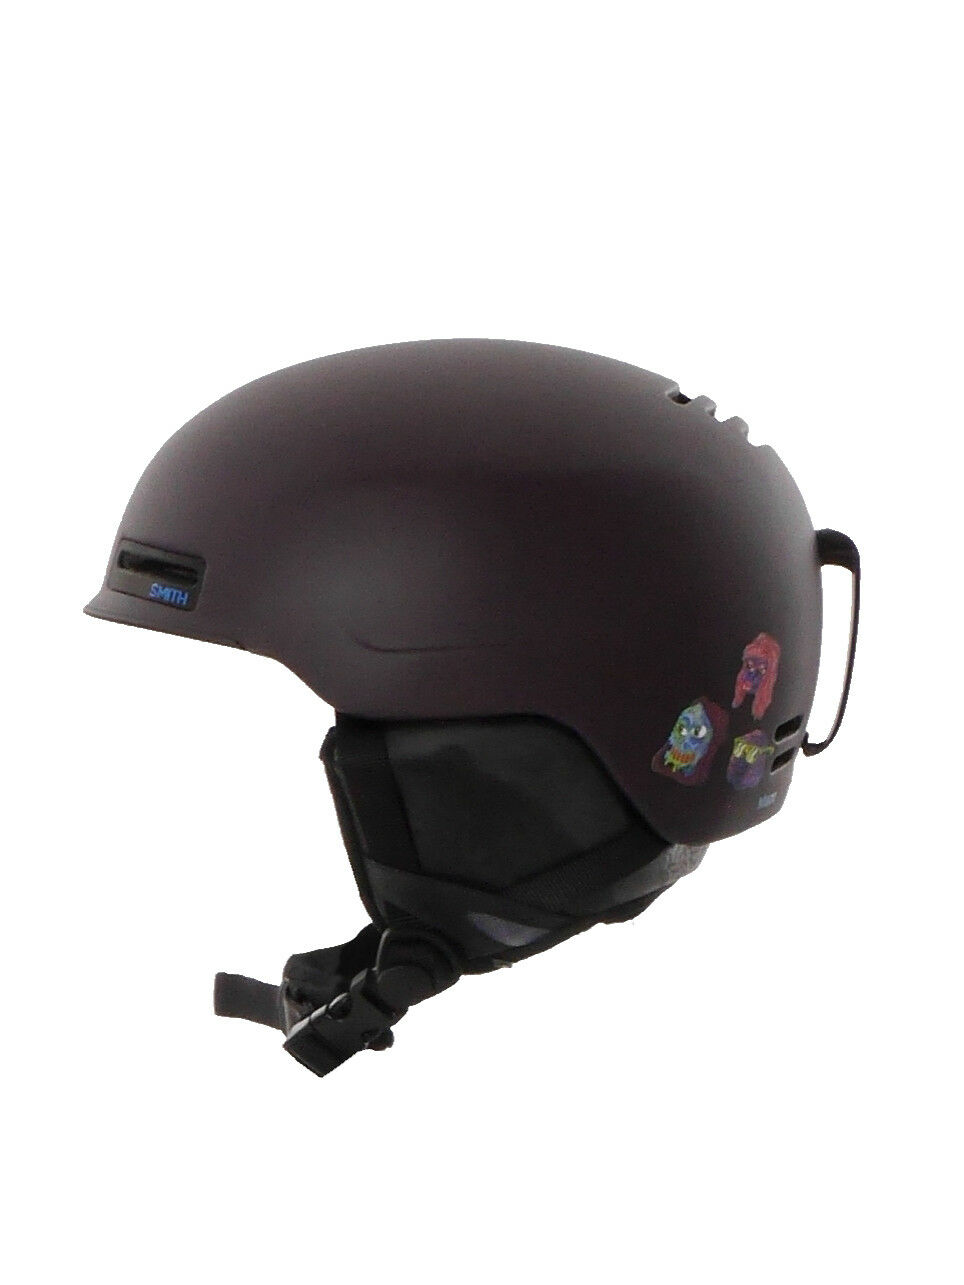 Smith Ski Snowboard  Helmet Maze-Ad Purple Lightweight Plain All Ears Pads  high-quality merchandise and convenient, honest service